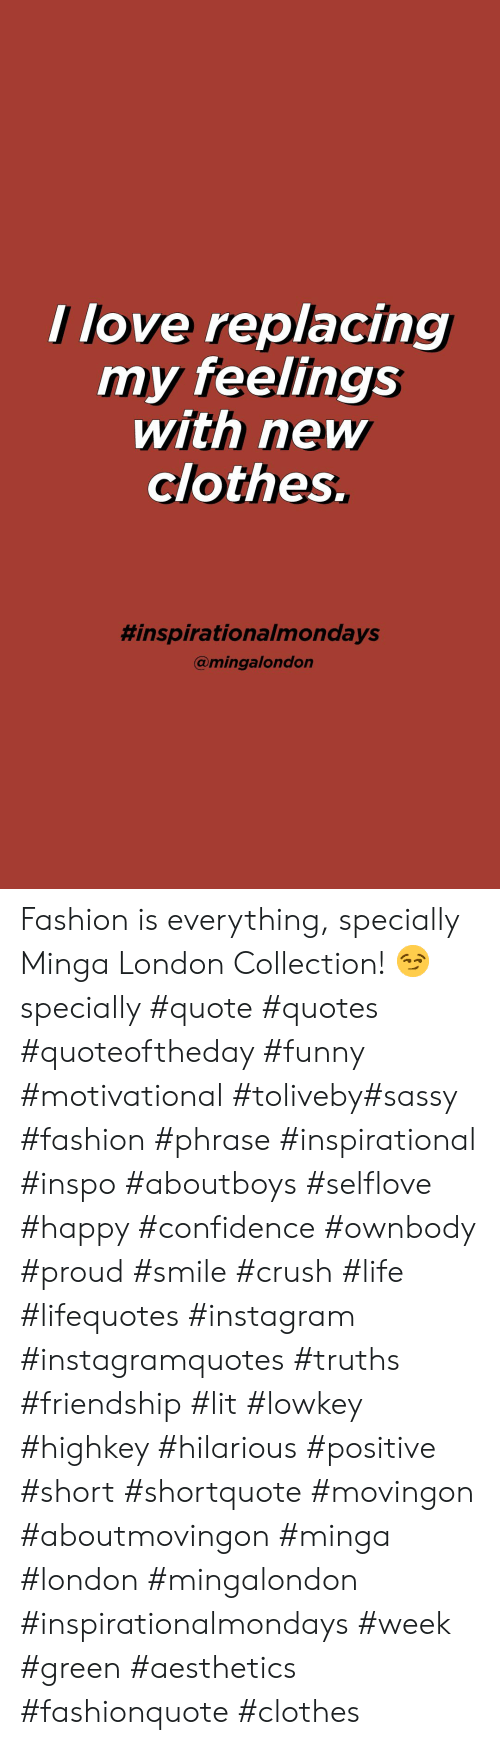 Funny Motivational: I love replacing  my feelings  with new  clothes.  #inspirationalmondays  @mingalondon Fashion is everything, specially Minga London Collection! 😏 specially  #quote #quotes #quoteoftheday #funny #motivational #toliveby#sassy #fashion #phrase #inspirational #inspo #aboutboys #selflove #happy #confidence #ownbody #proud #smile #crush #life #lifequotes #instagram #instagramquotes #truths #friendship #lit #lowkey #highkey #hilarious #positive #short #shortquote #movingon #aboutmovingon #minga #london #mingalondon #inspirationalmondays #week #green #aesthetics #fashionquote #clothes